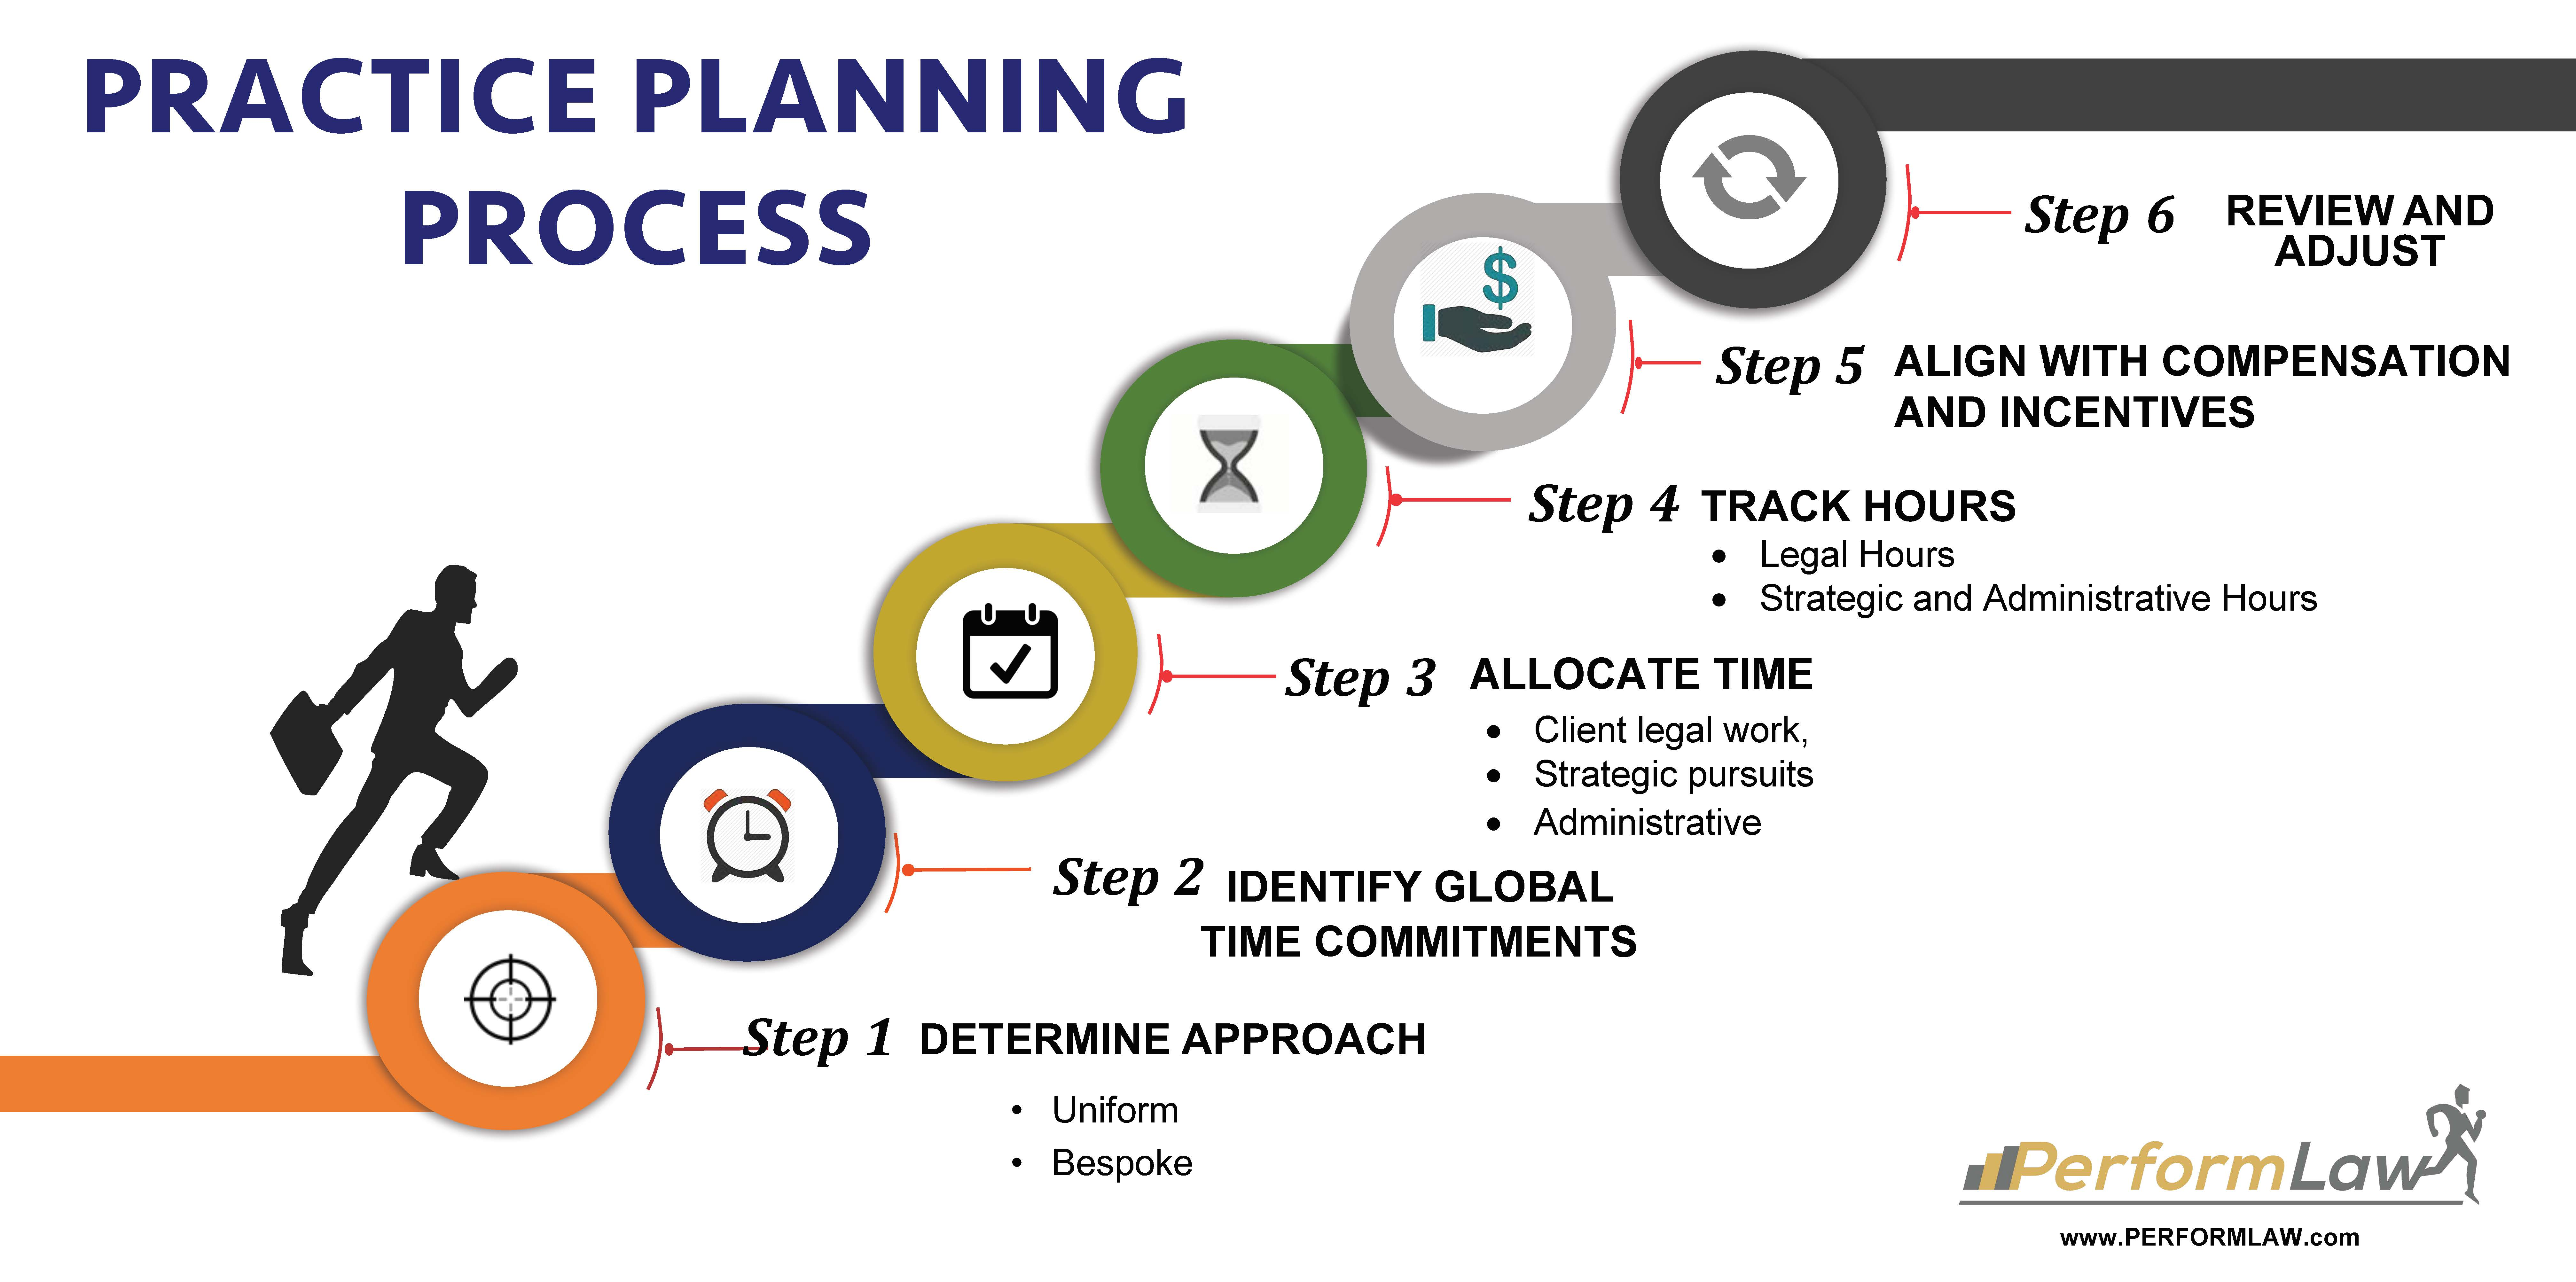 Law firm practice planning steps